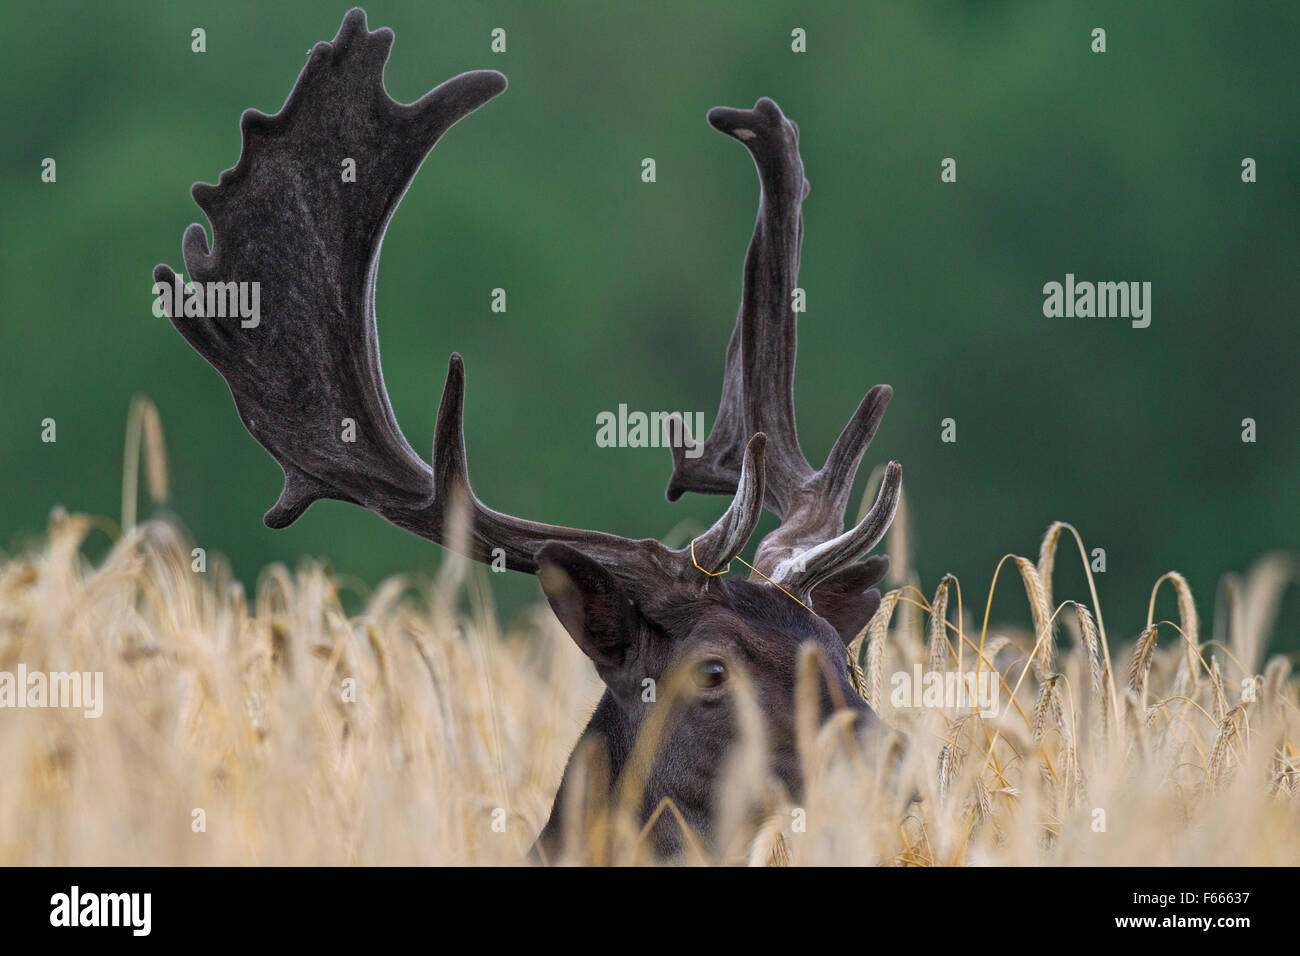 Fallow deer (Dama dama) buck with antlers covered in velvet in wheat field in summer - Stock Image